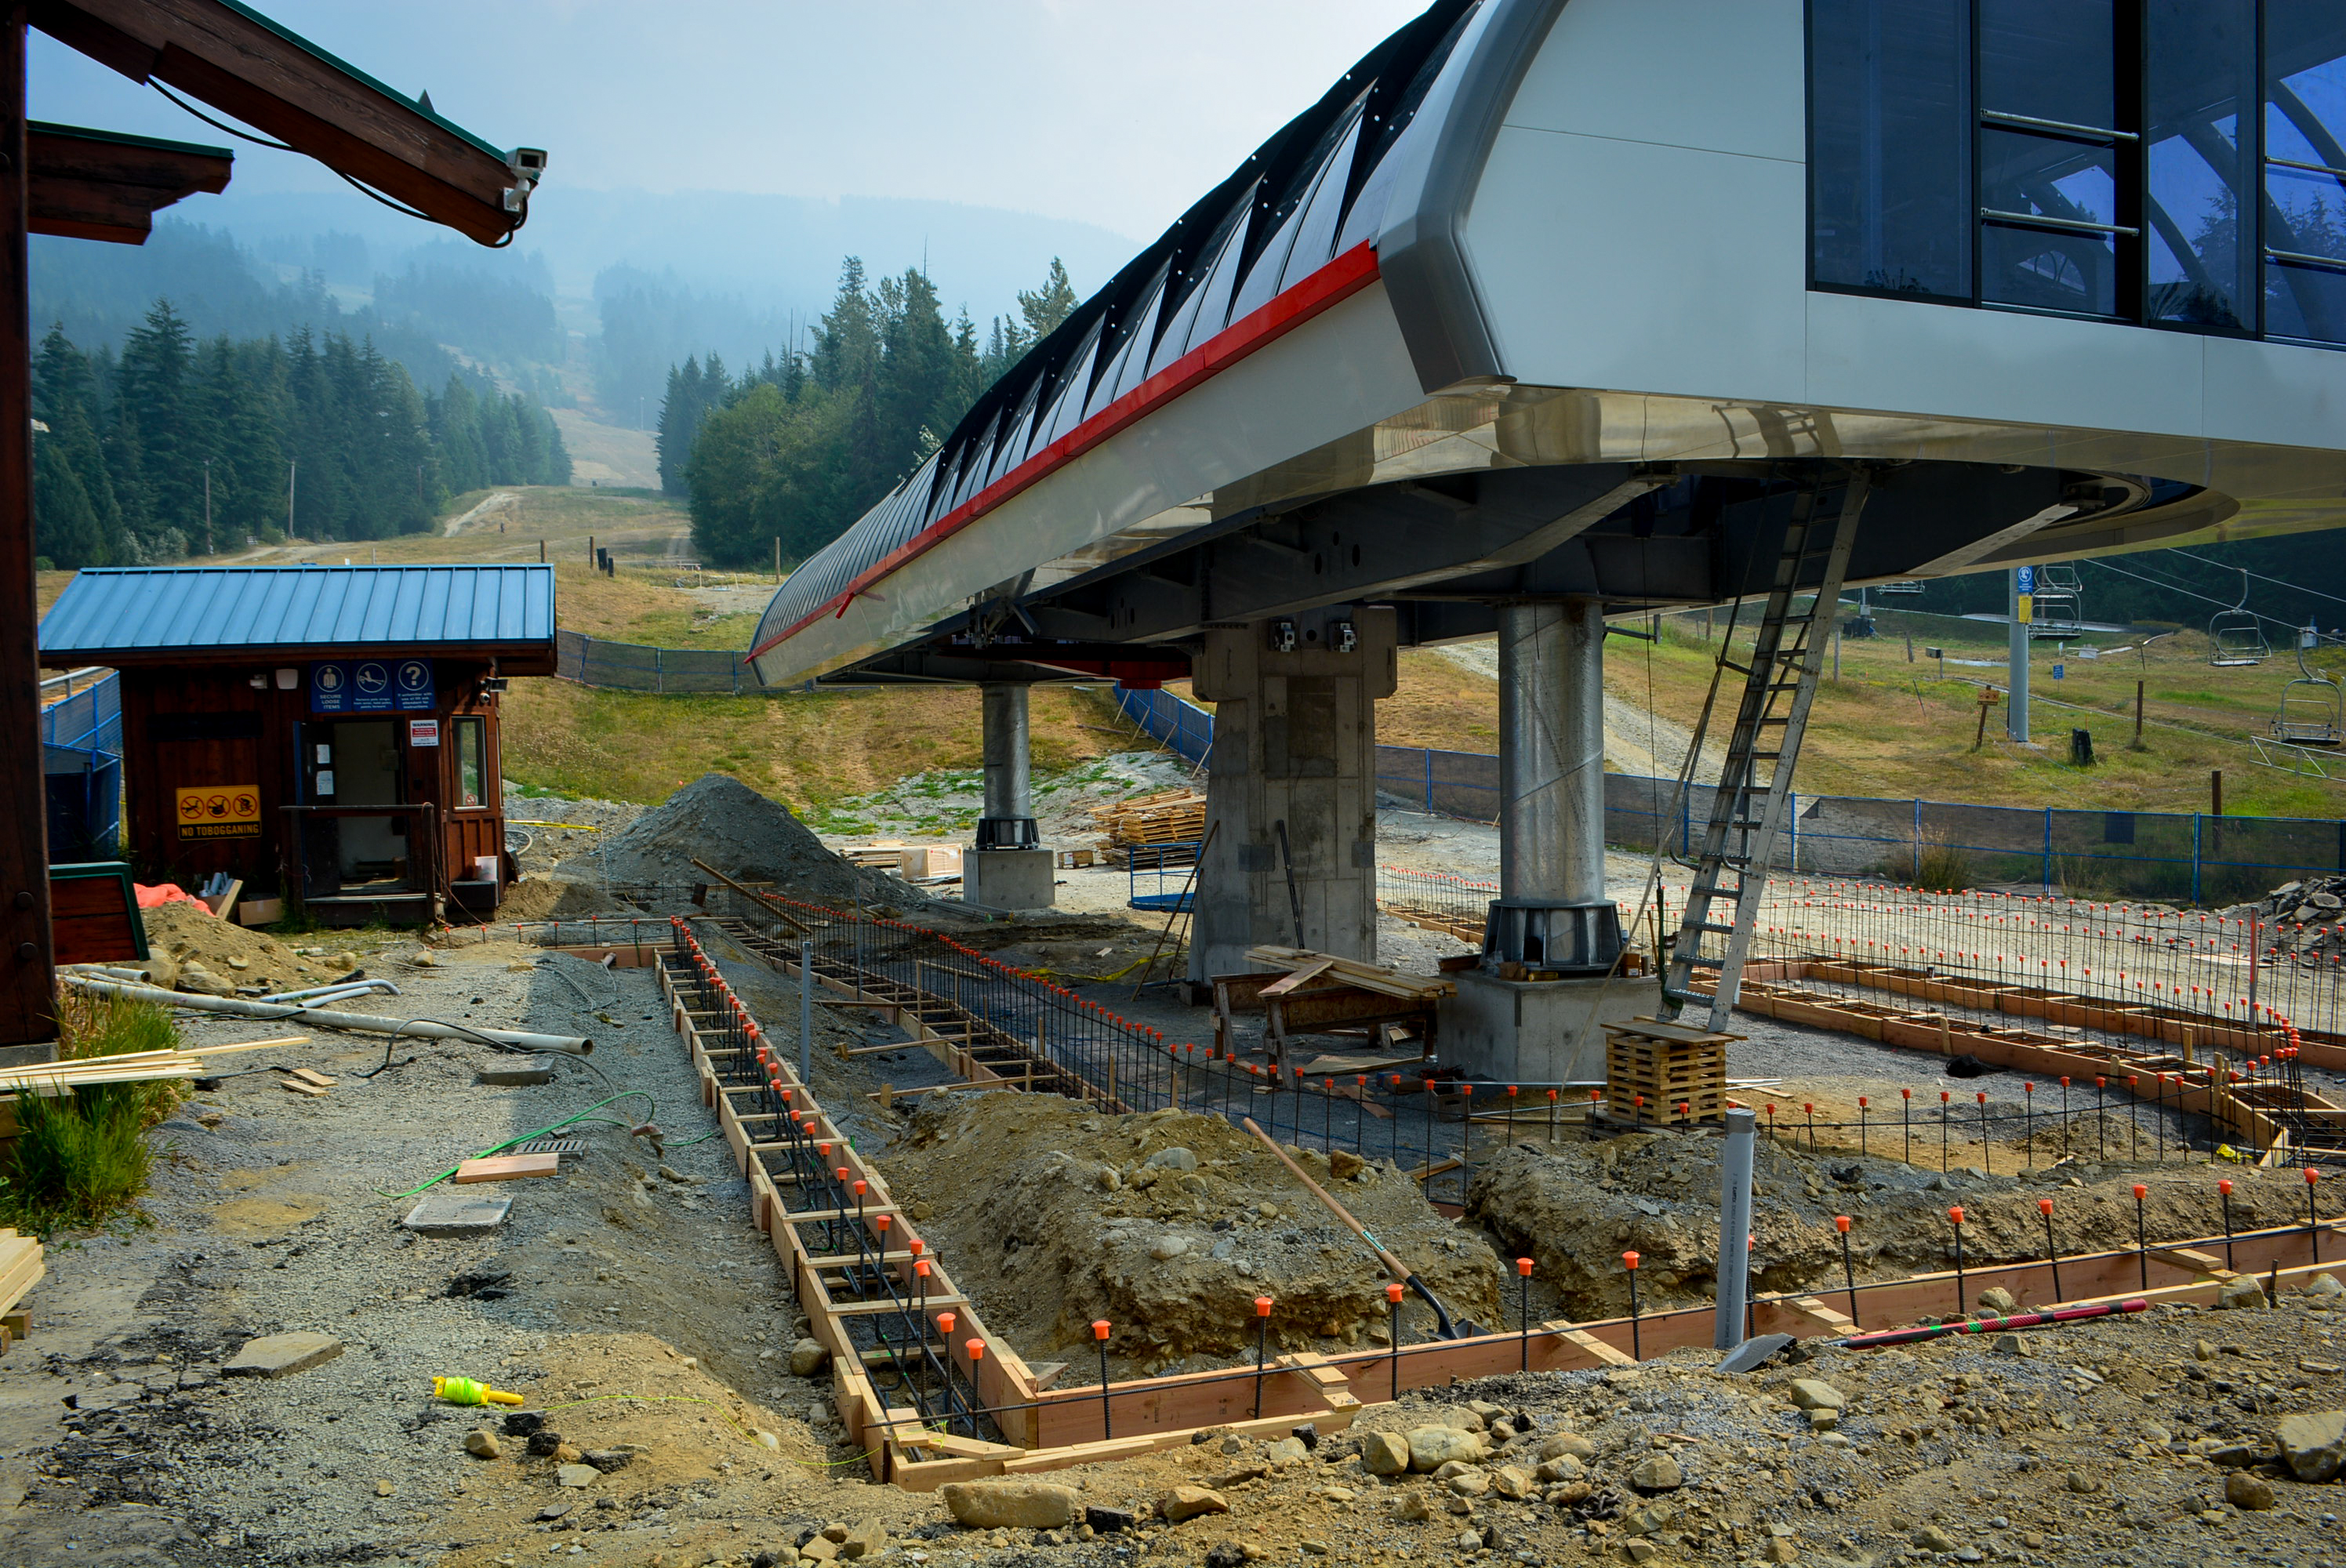 a chairlift under construction